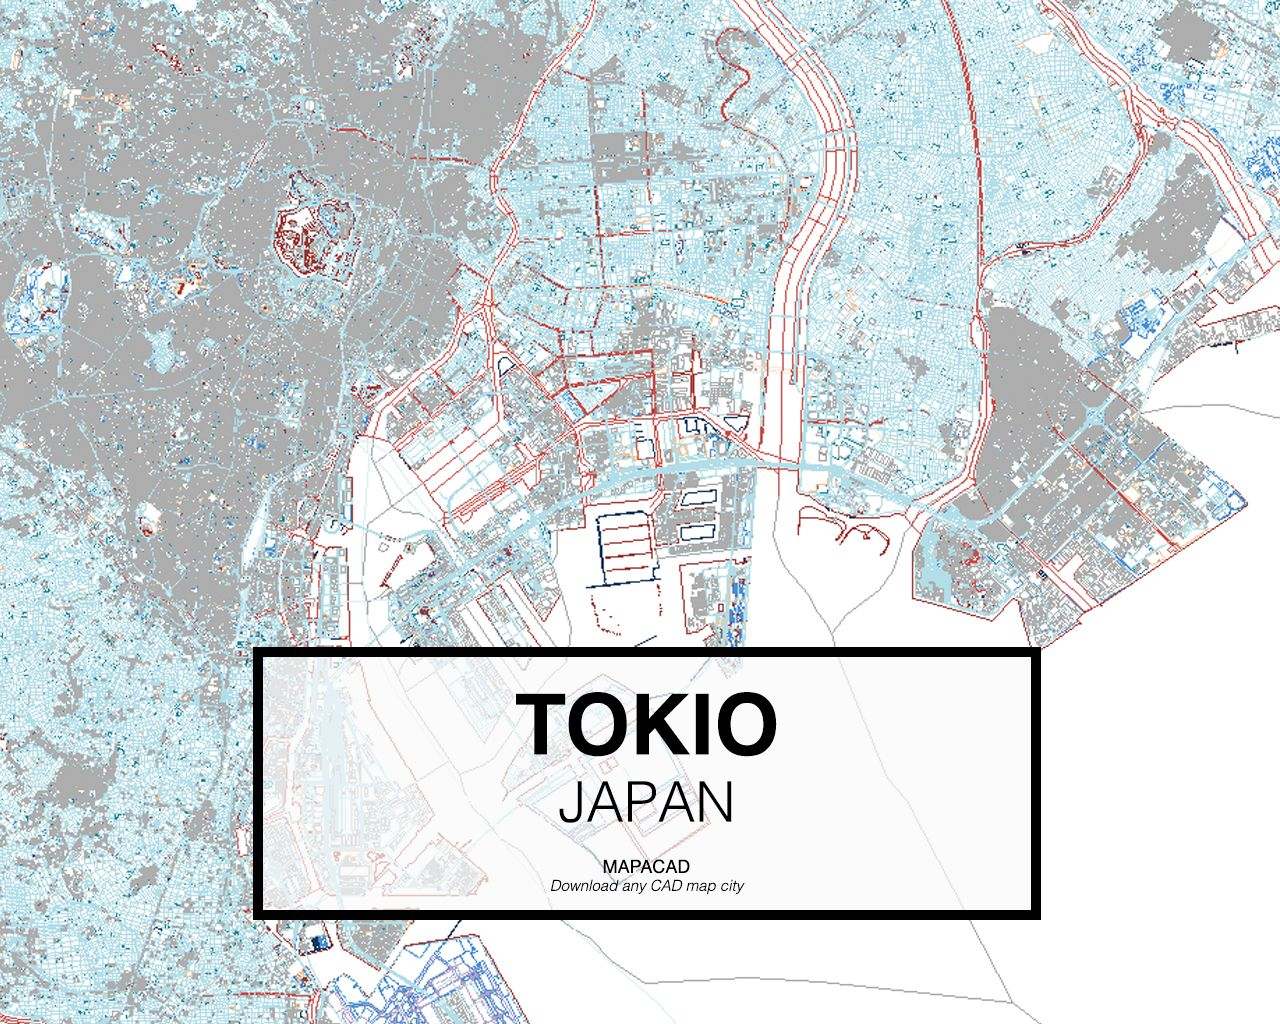 Tokio japan download cad map city in dwg ready to use in autocad download cad map city in dwg ready to use in autocad mapacad gumiabroncs Image collections